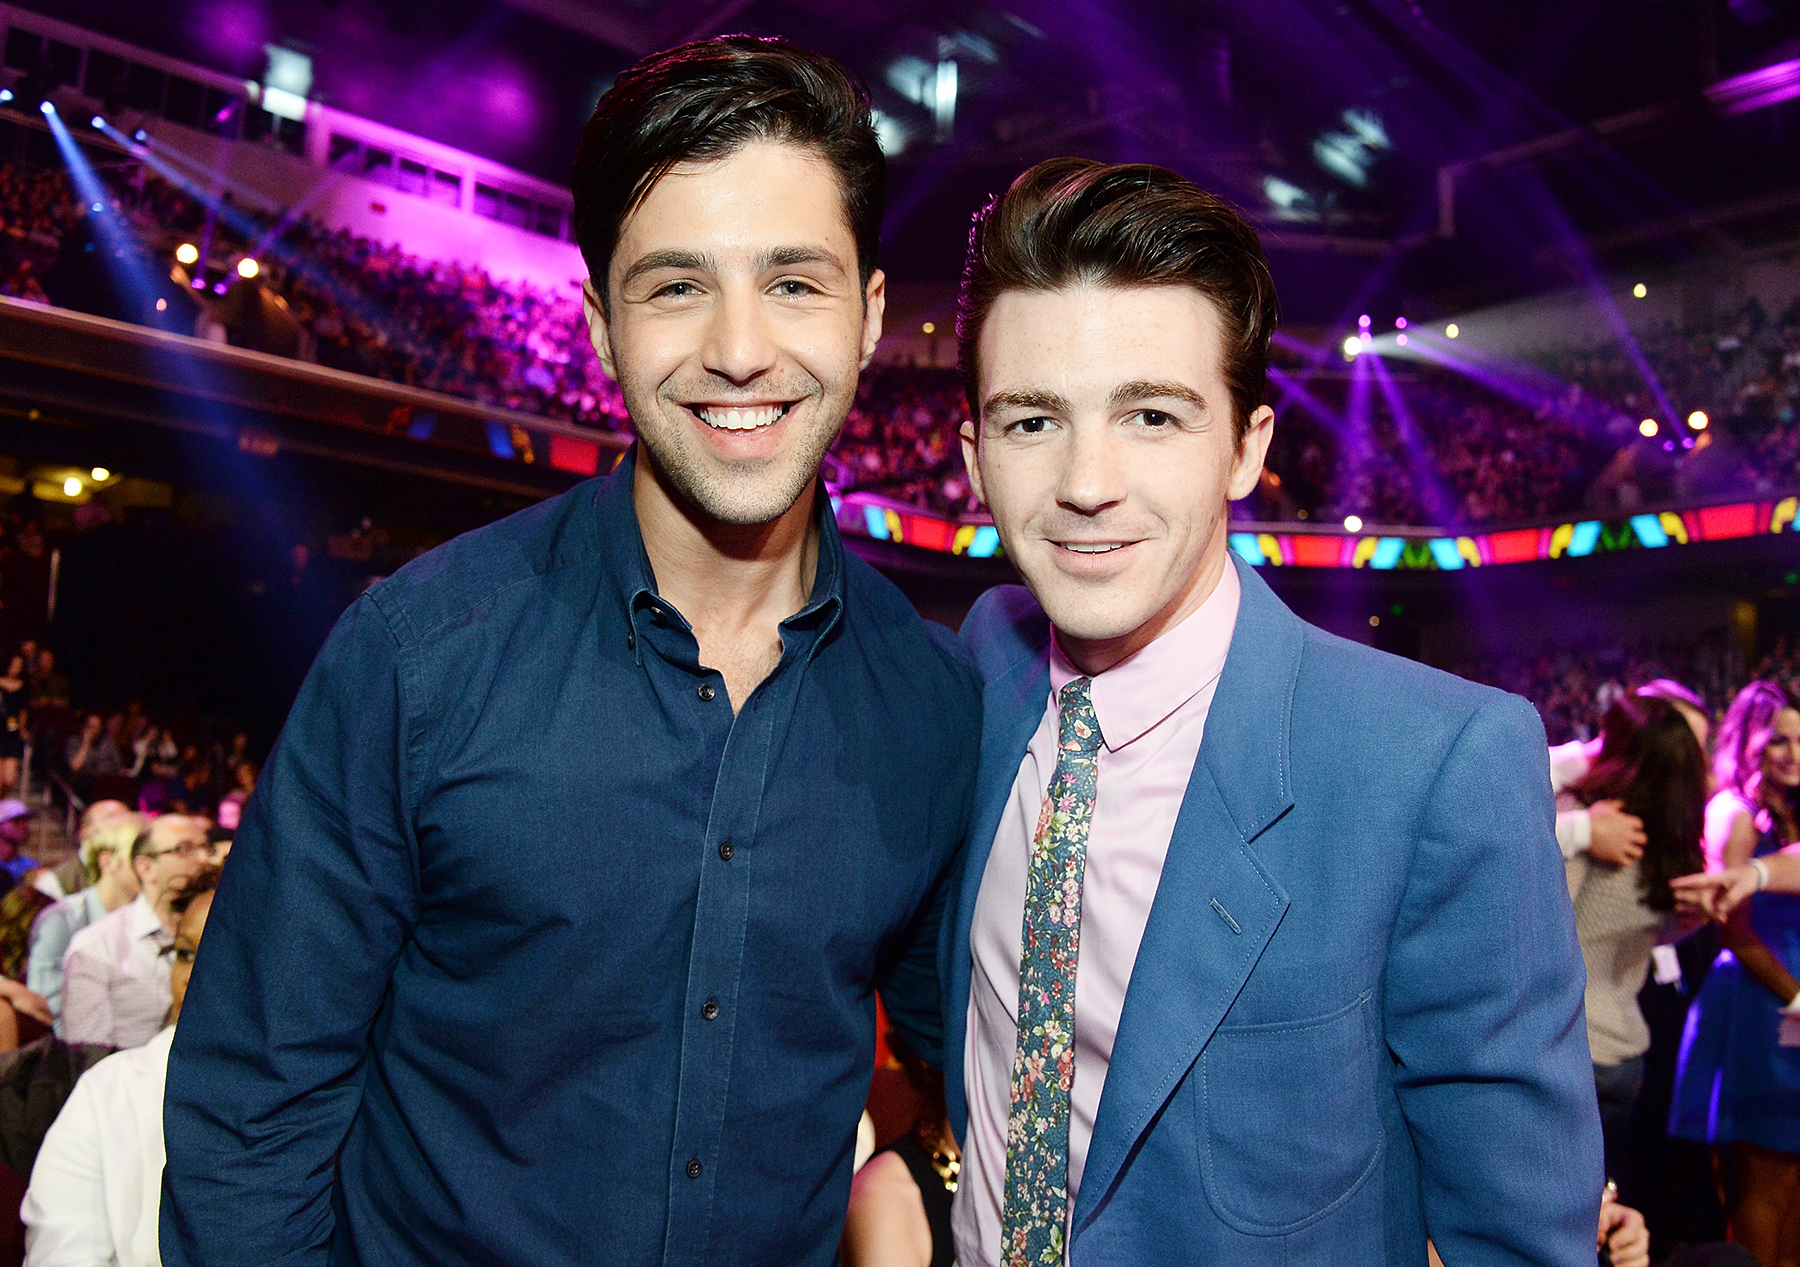 Drake Bell Josh Peck - All grown-up! Peck and Bell had both totally transformed by the time they reunited at the 2014 Kids' Choice Awards in Los Angeles.